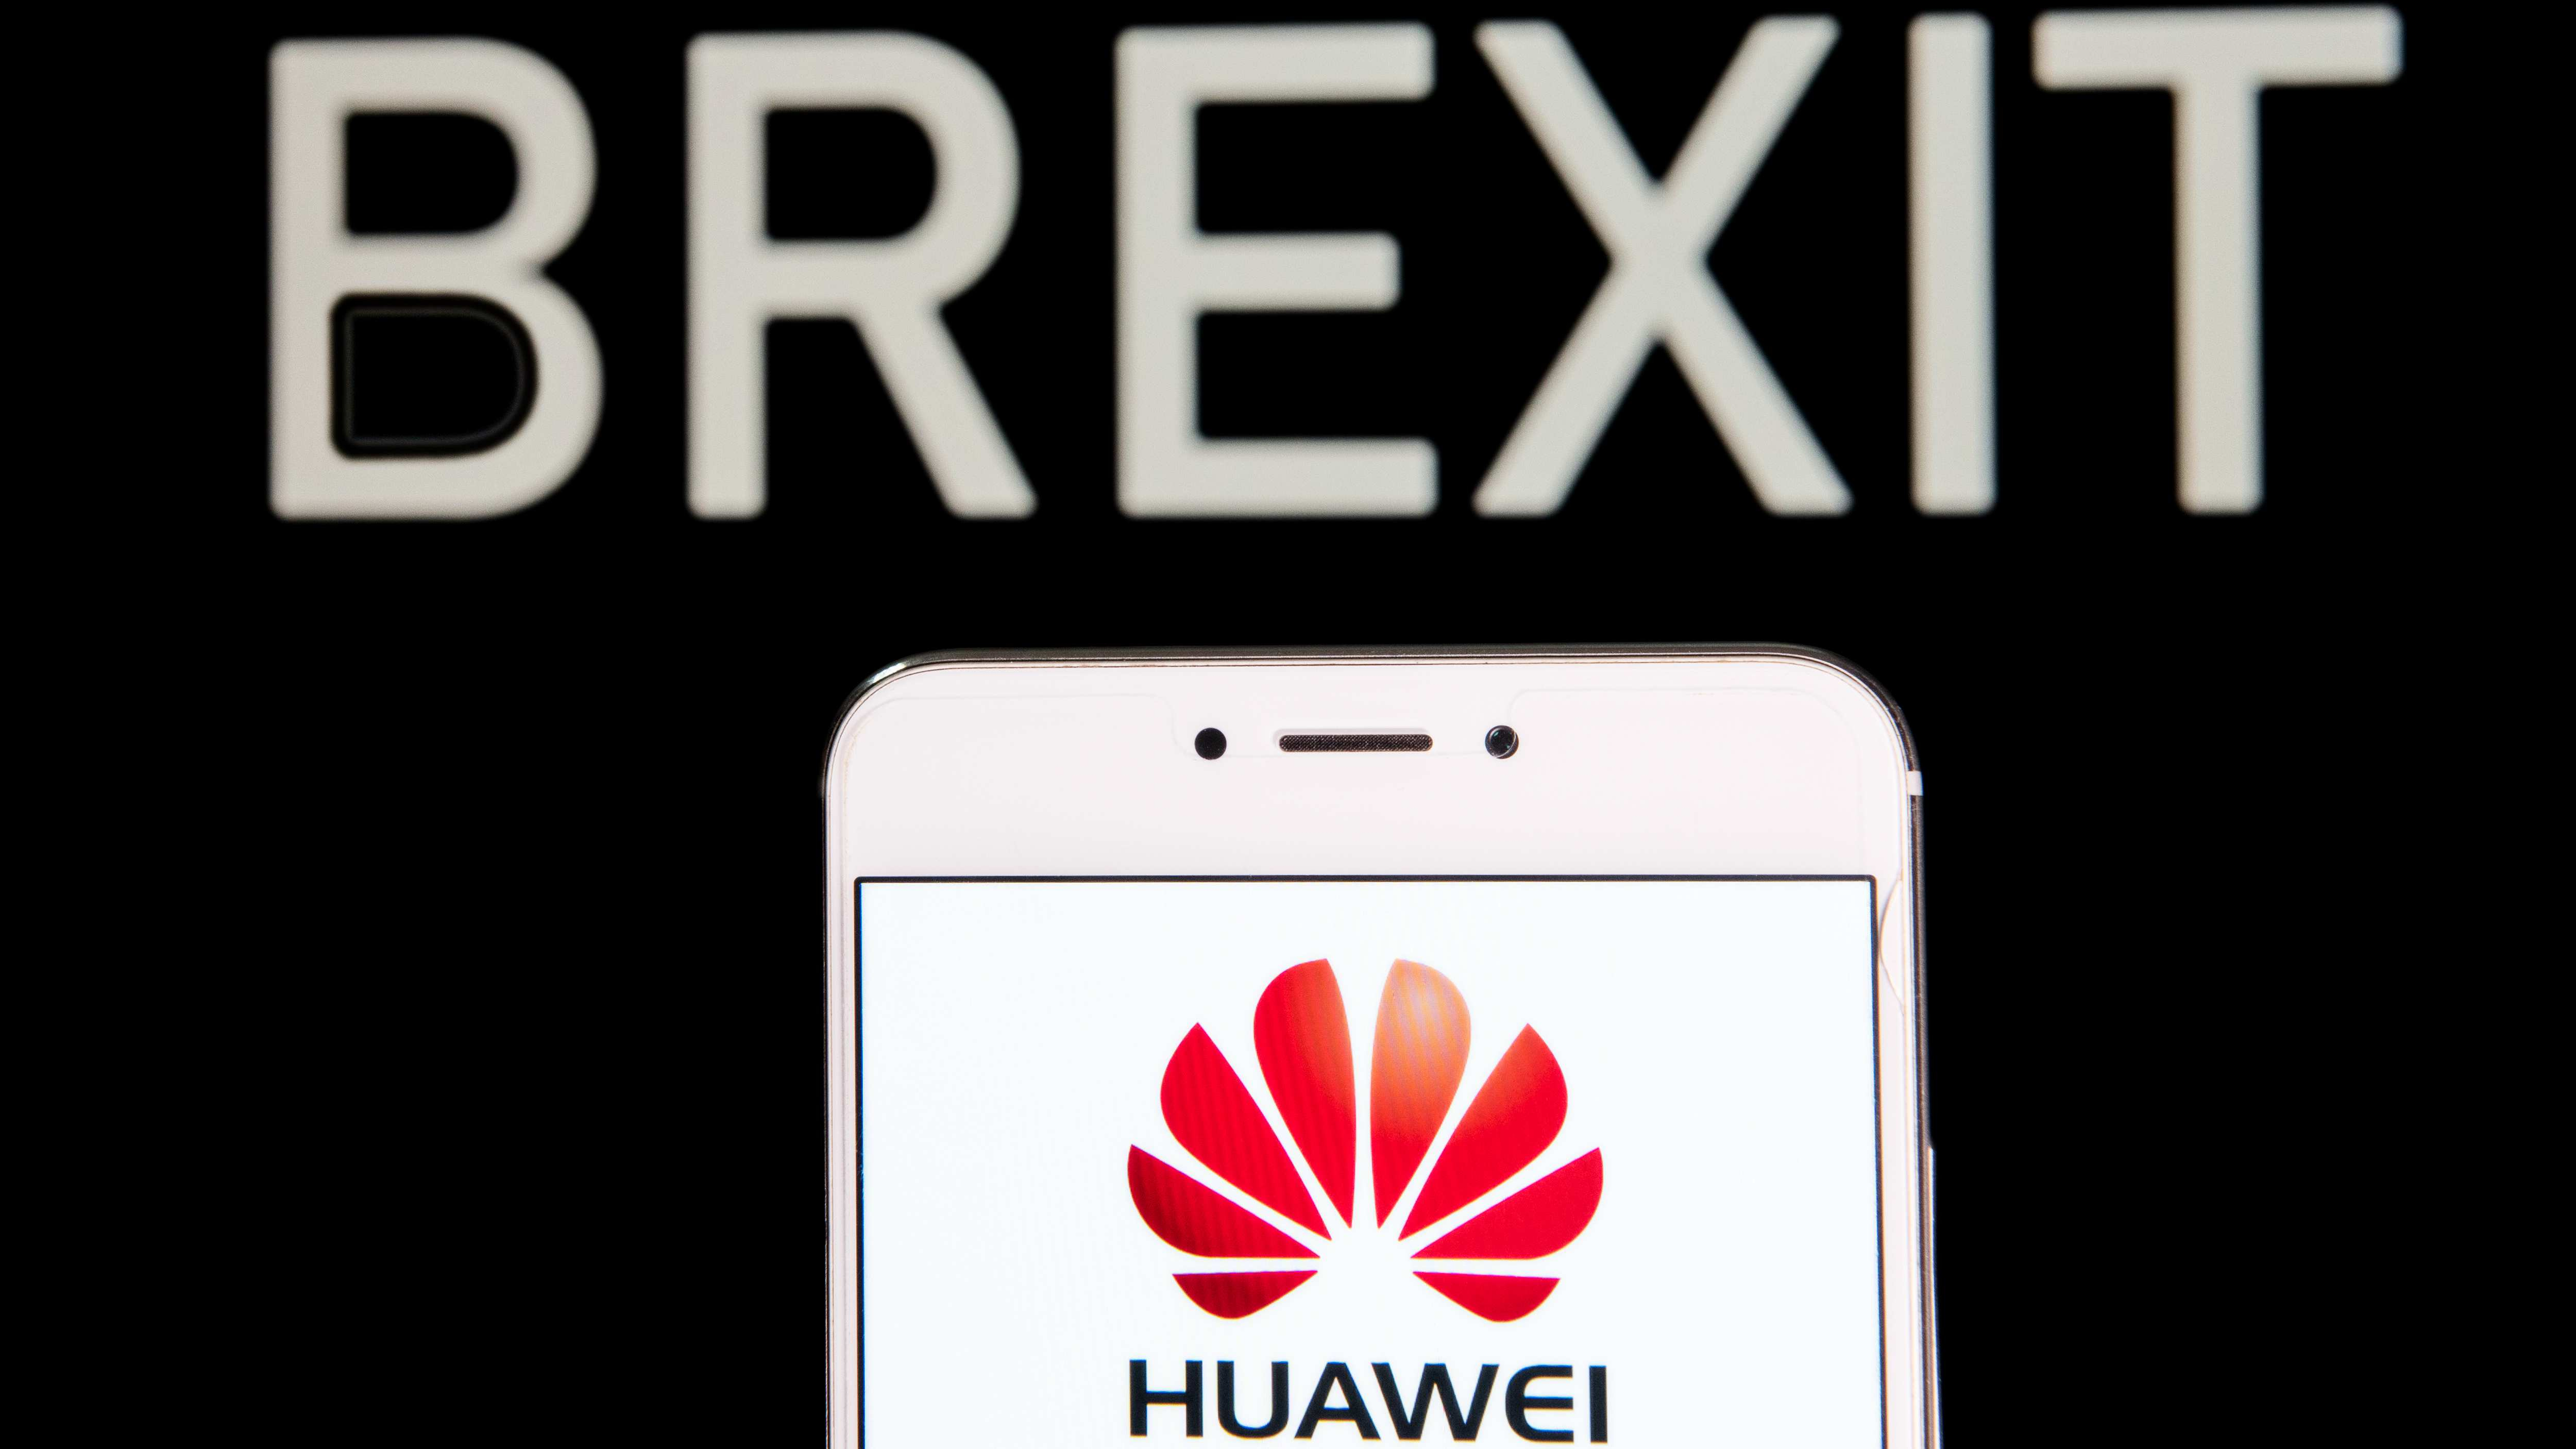 Huawei's participation is a brave step for British 5G networks